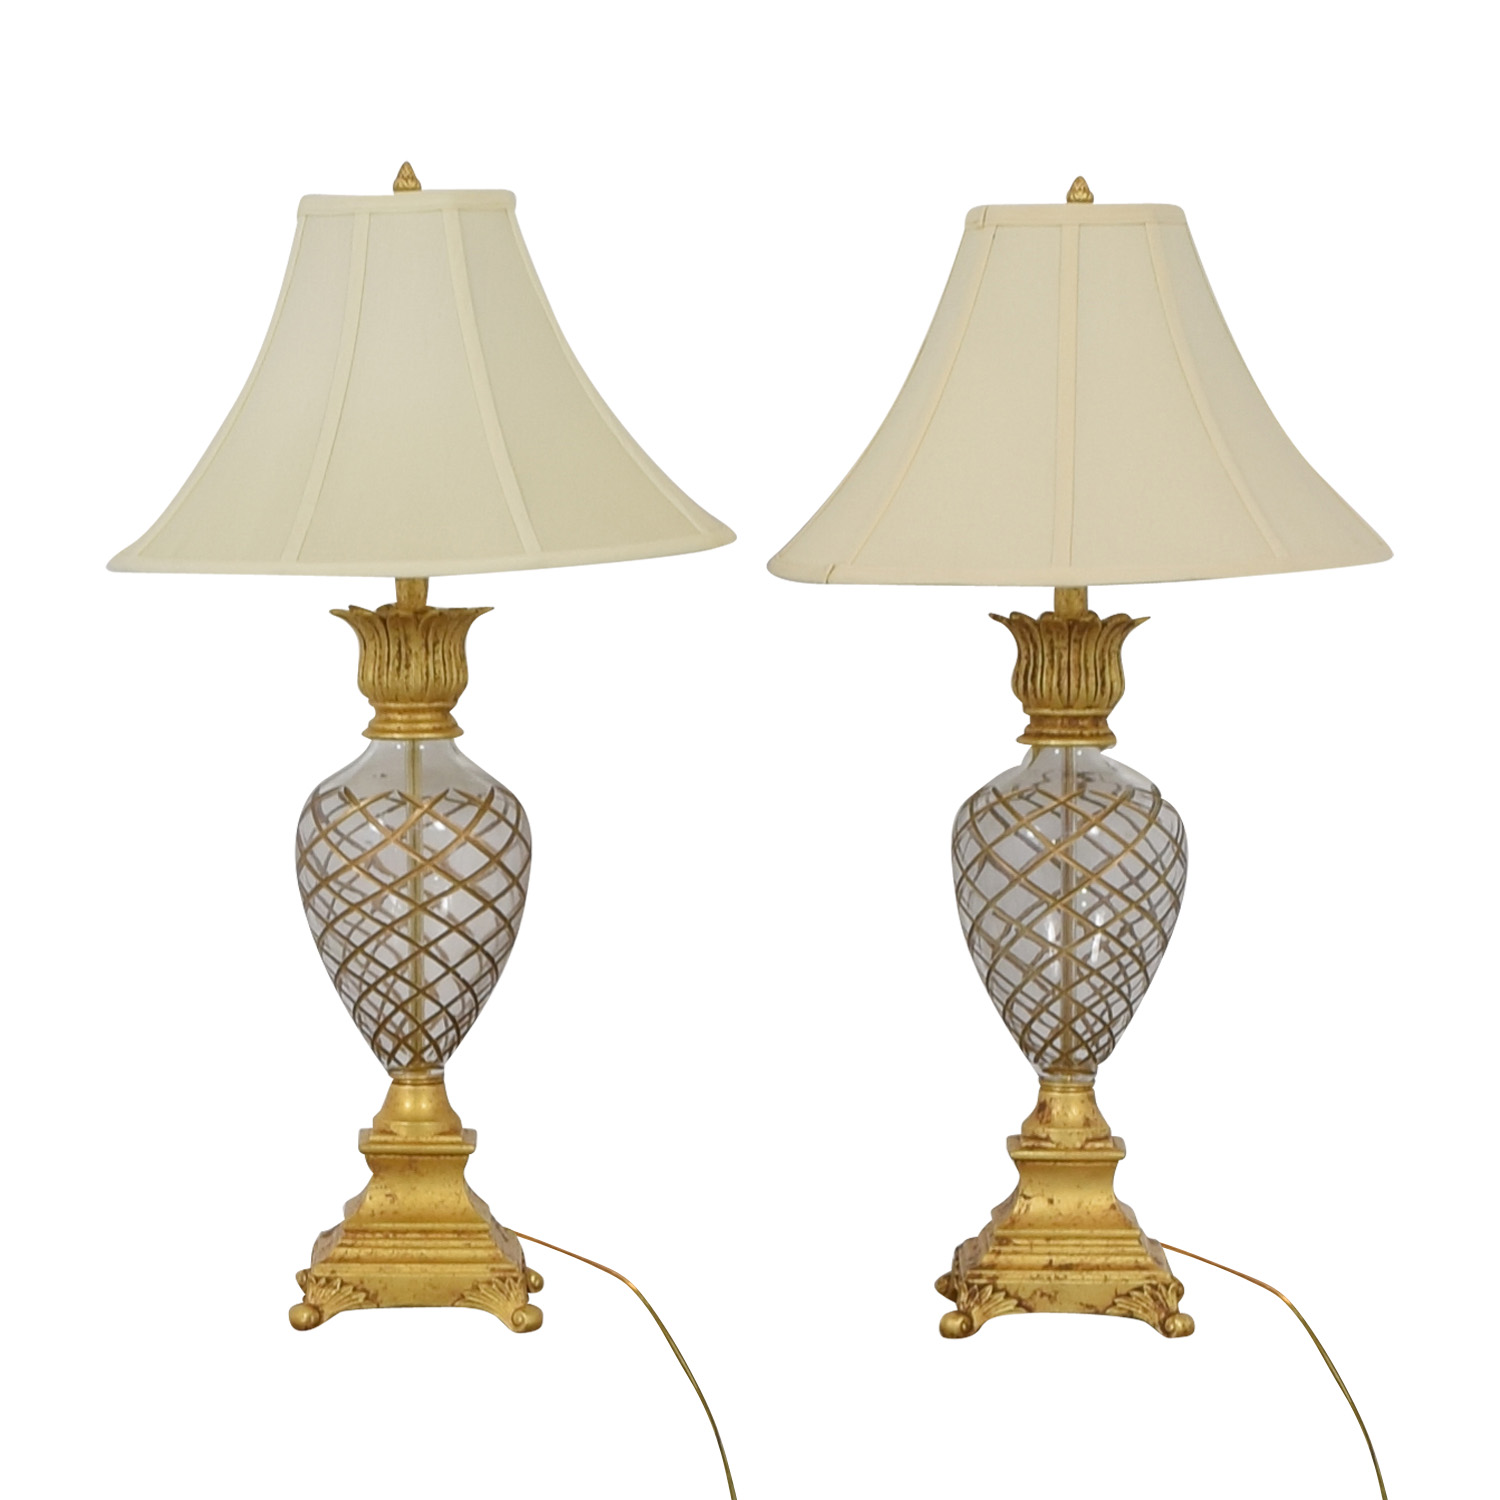 Ethan Allen Ethan Allen Table Lamps price